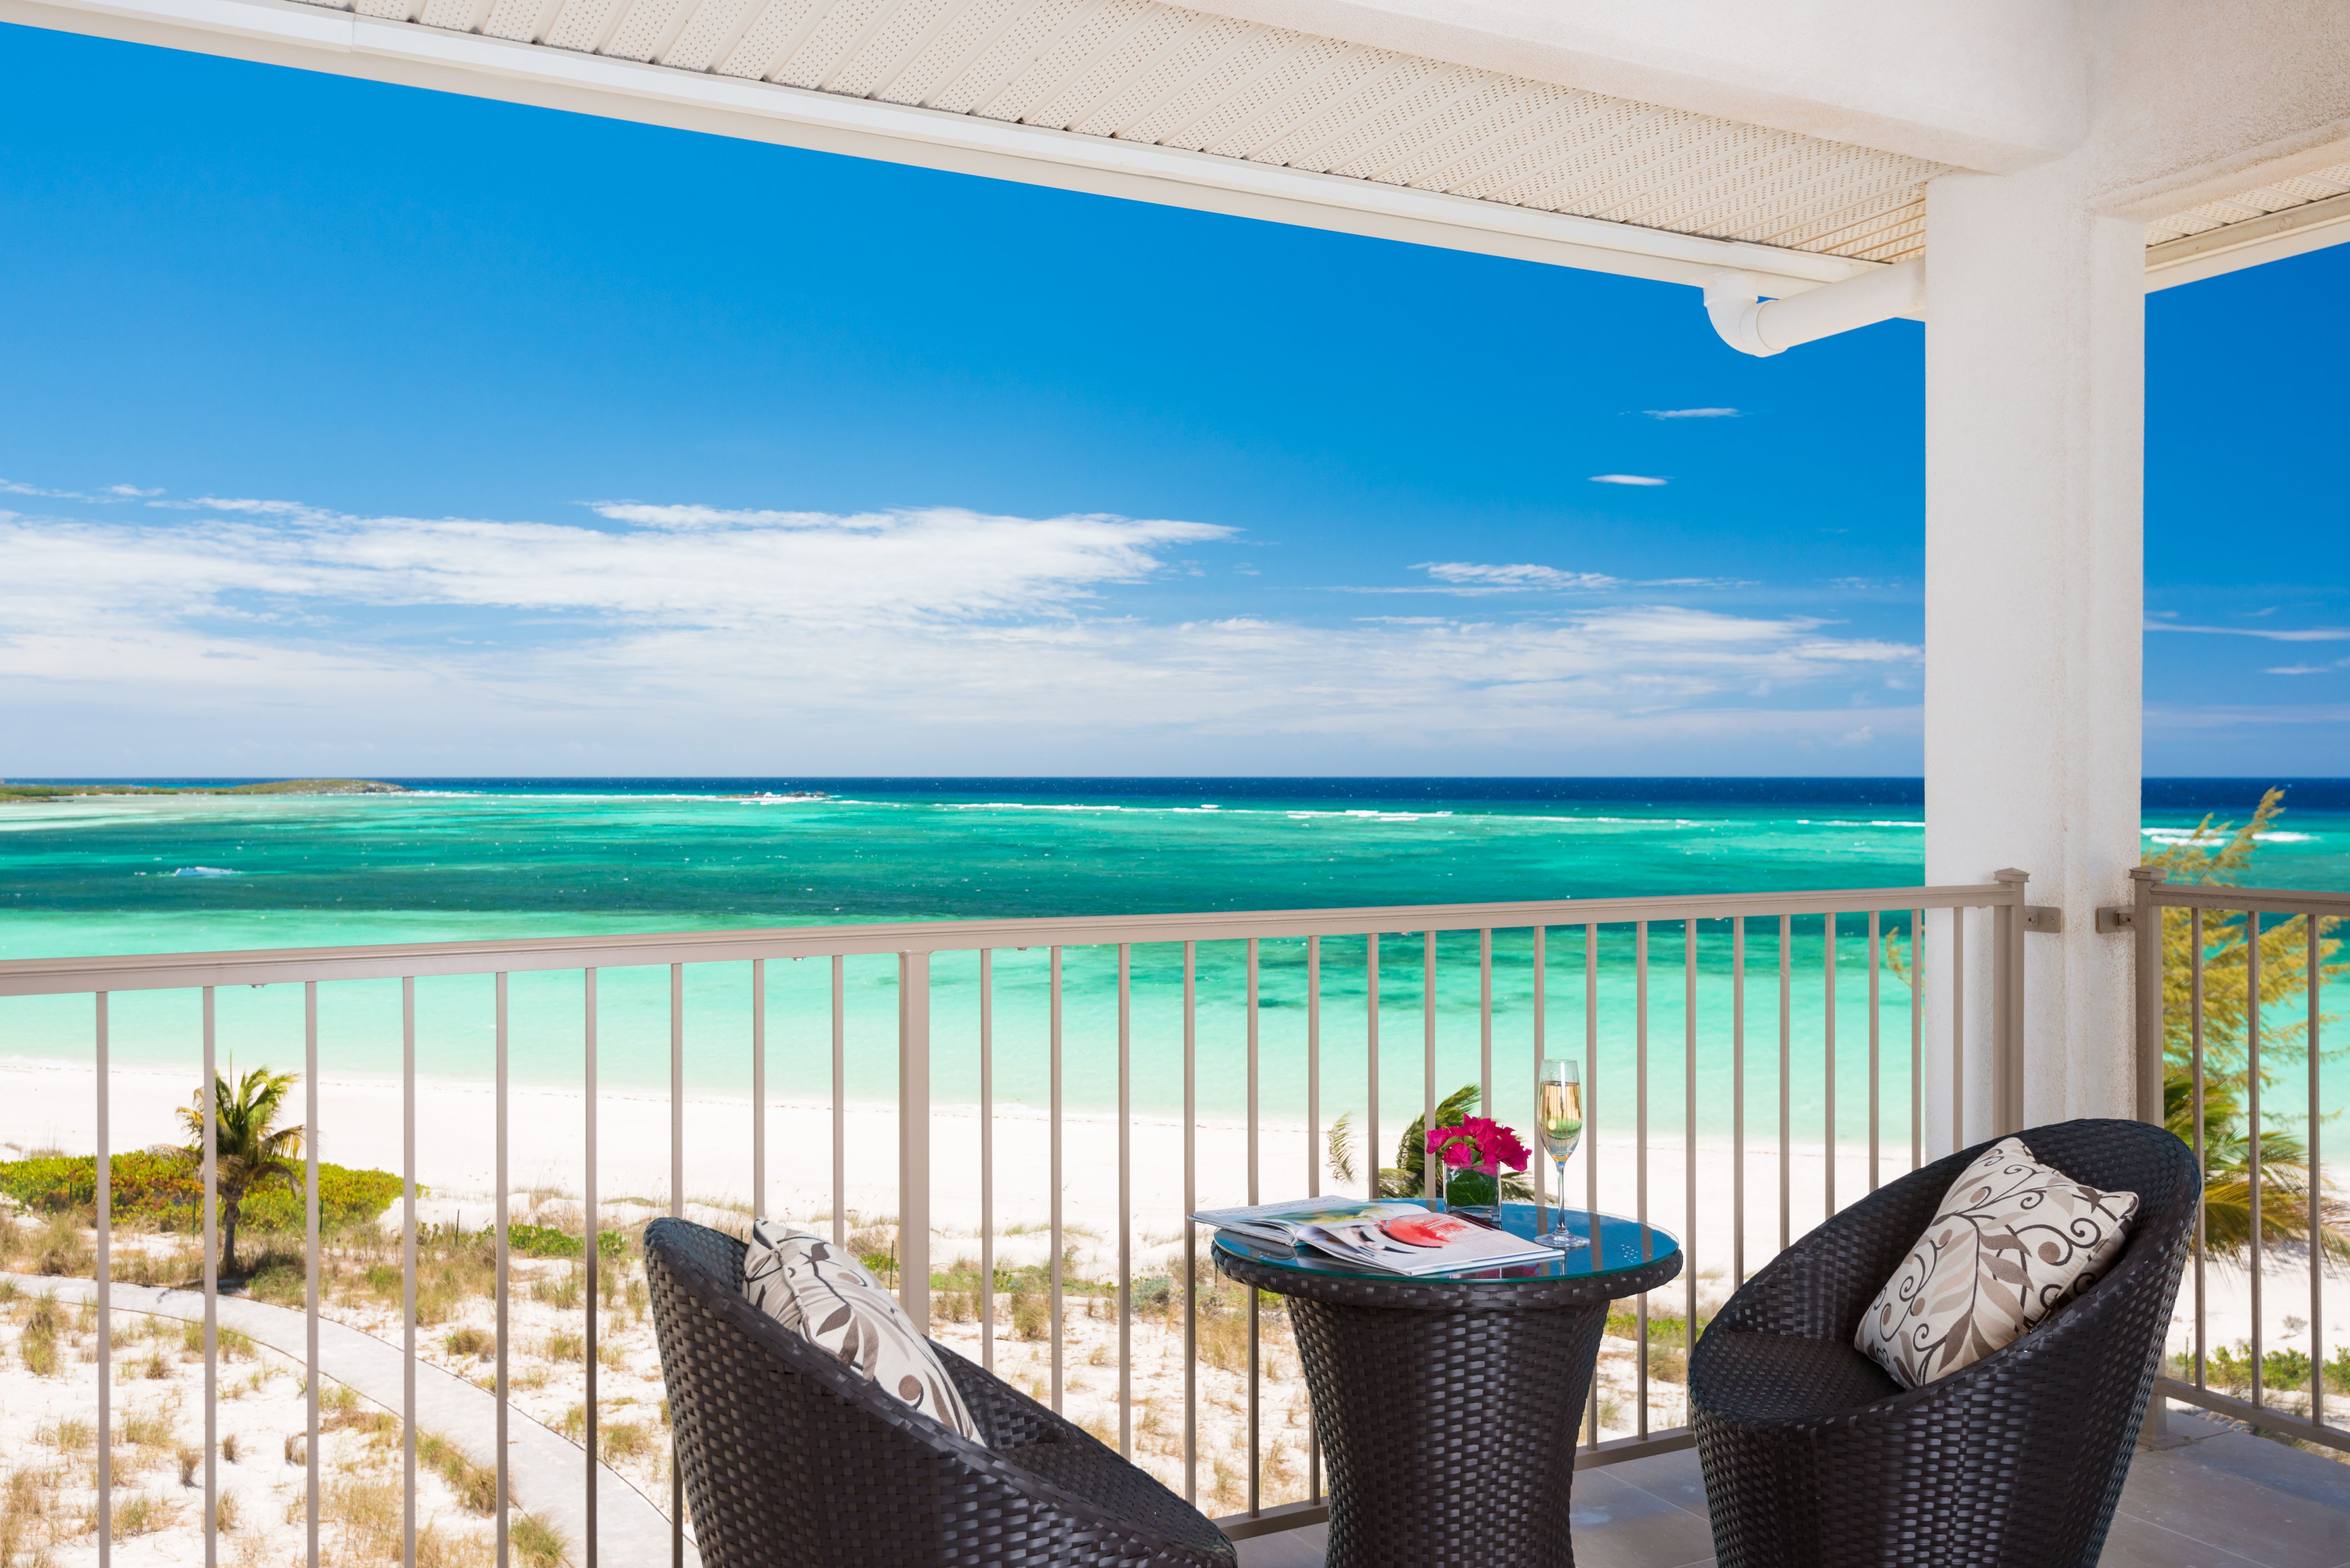 View of beach from one bedroom suite at www.eastbayresort.com Turks and Caicos.